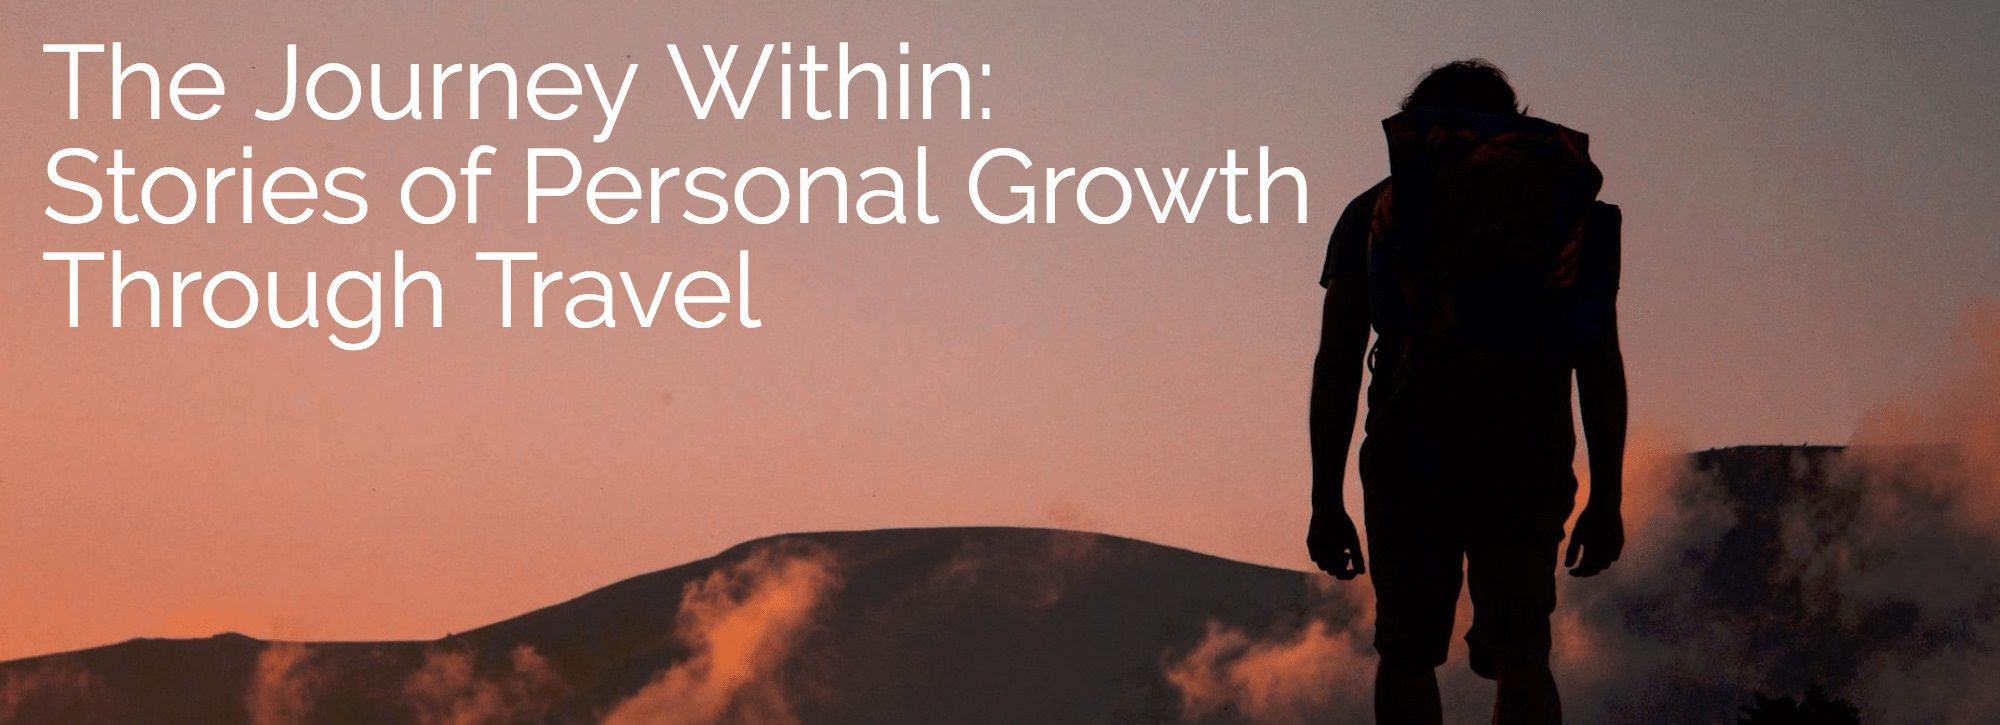 The Journey Within - Stories of Personal Growth Through Travel Better